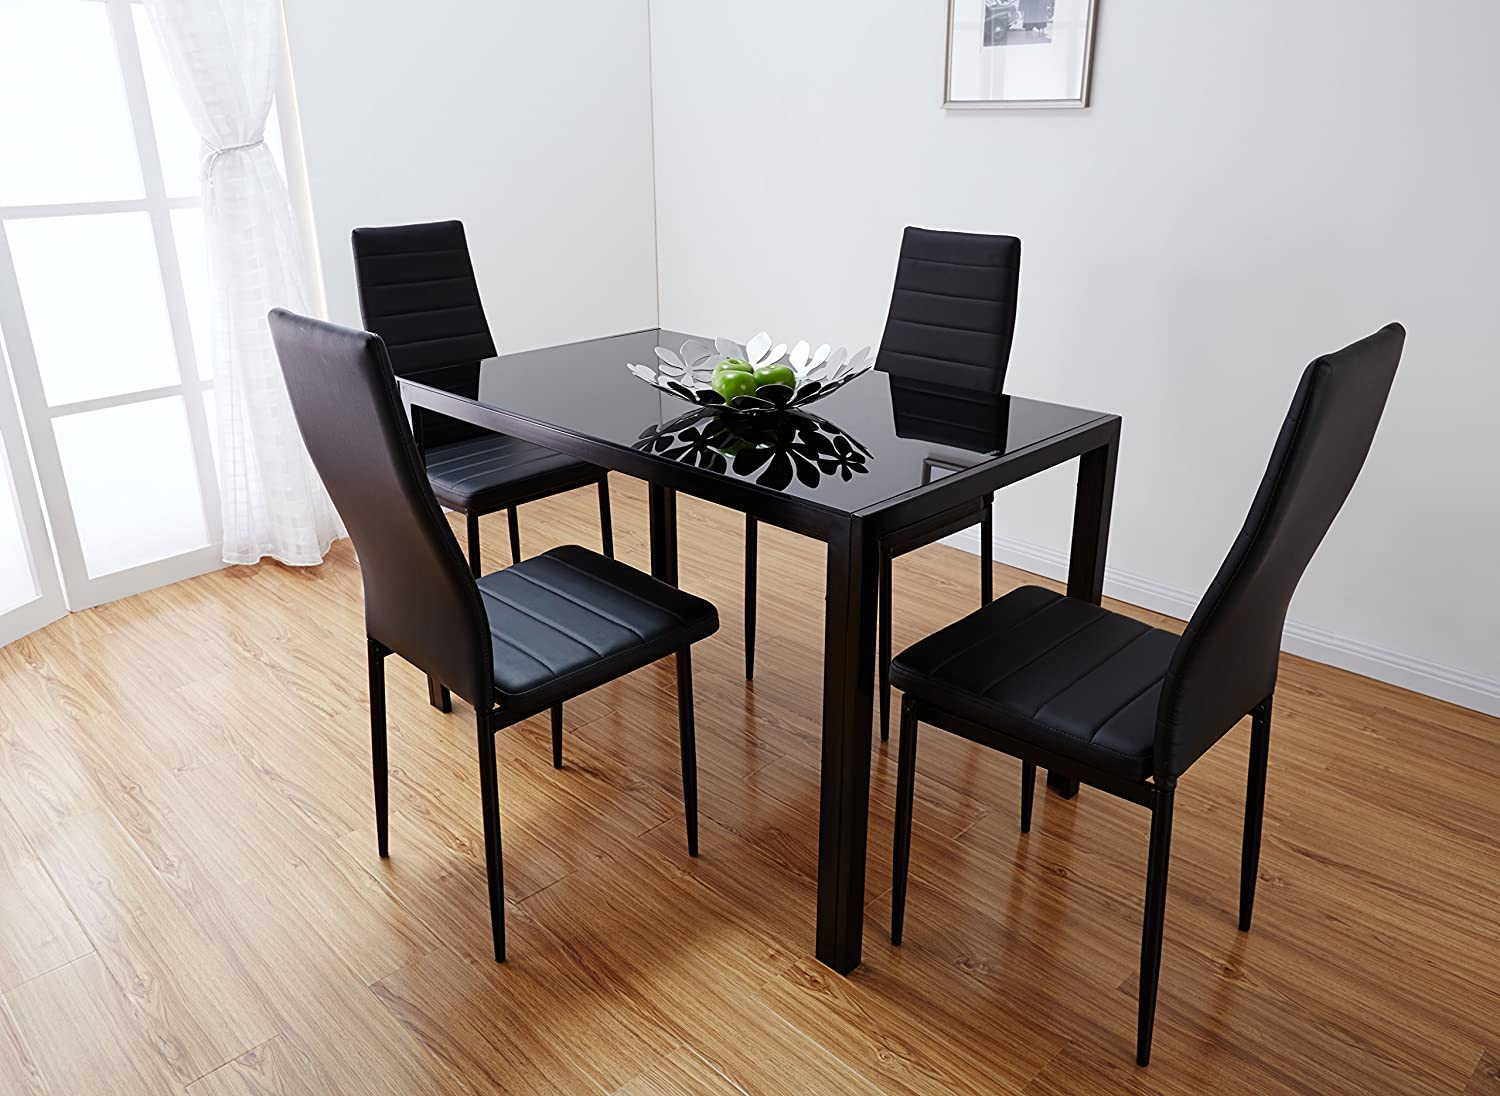 Black Glass Dining Table Set With 4 Faux Leather Chairs Brand New Amazoncouk Kitchen Home